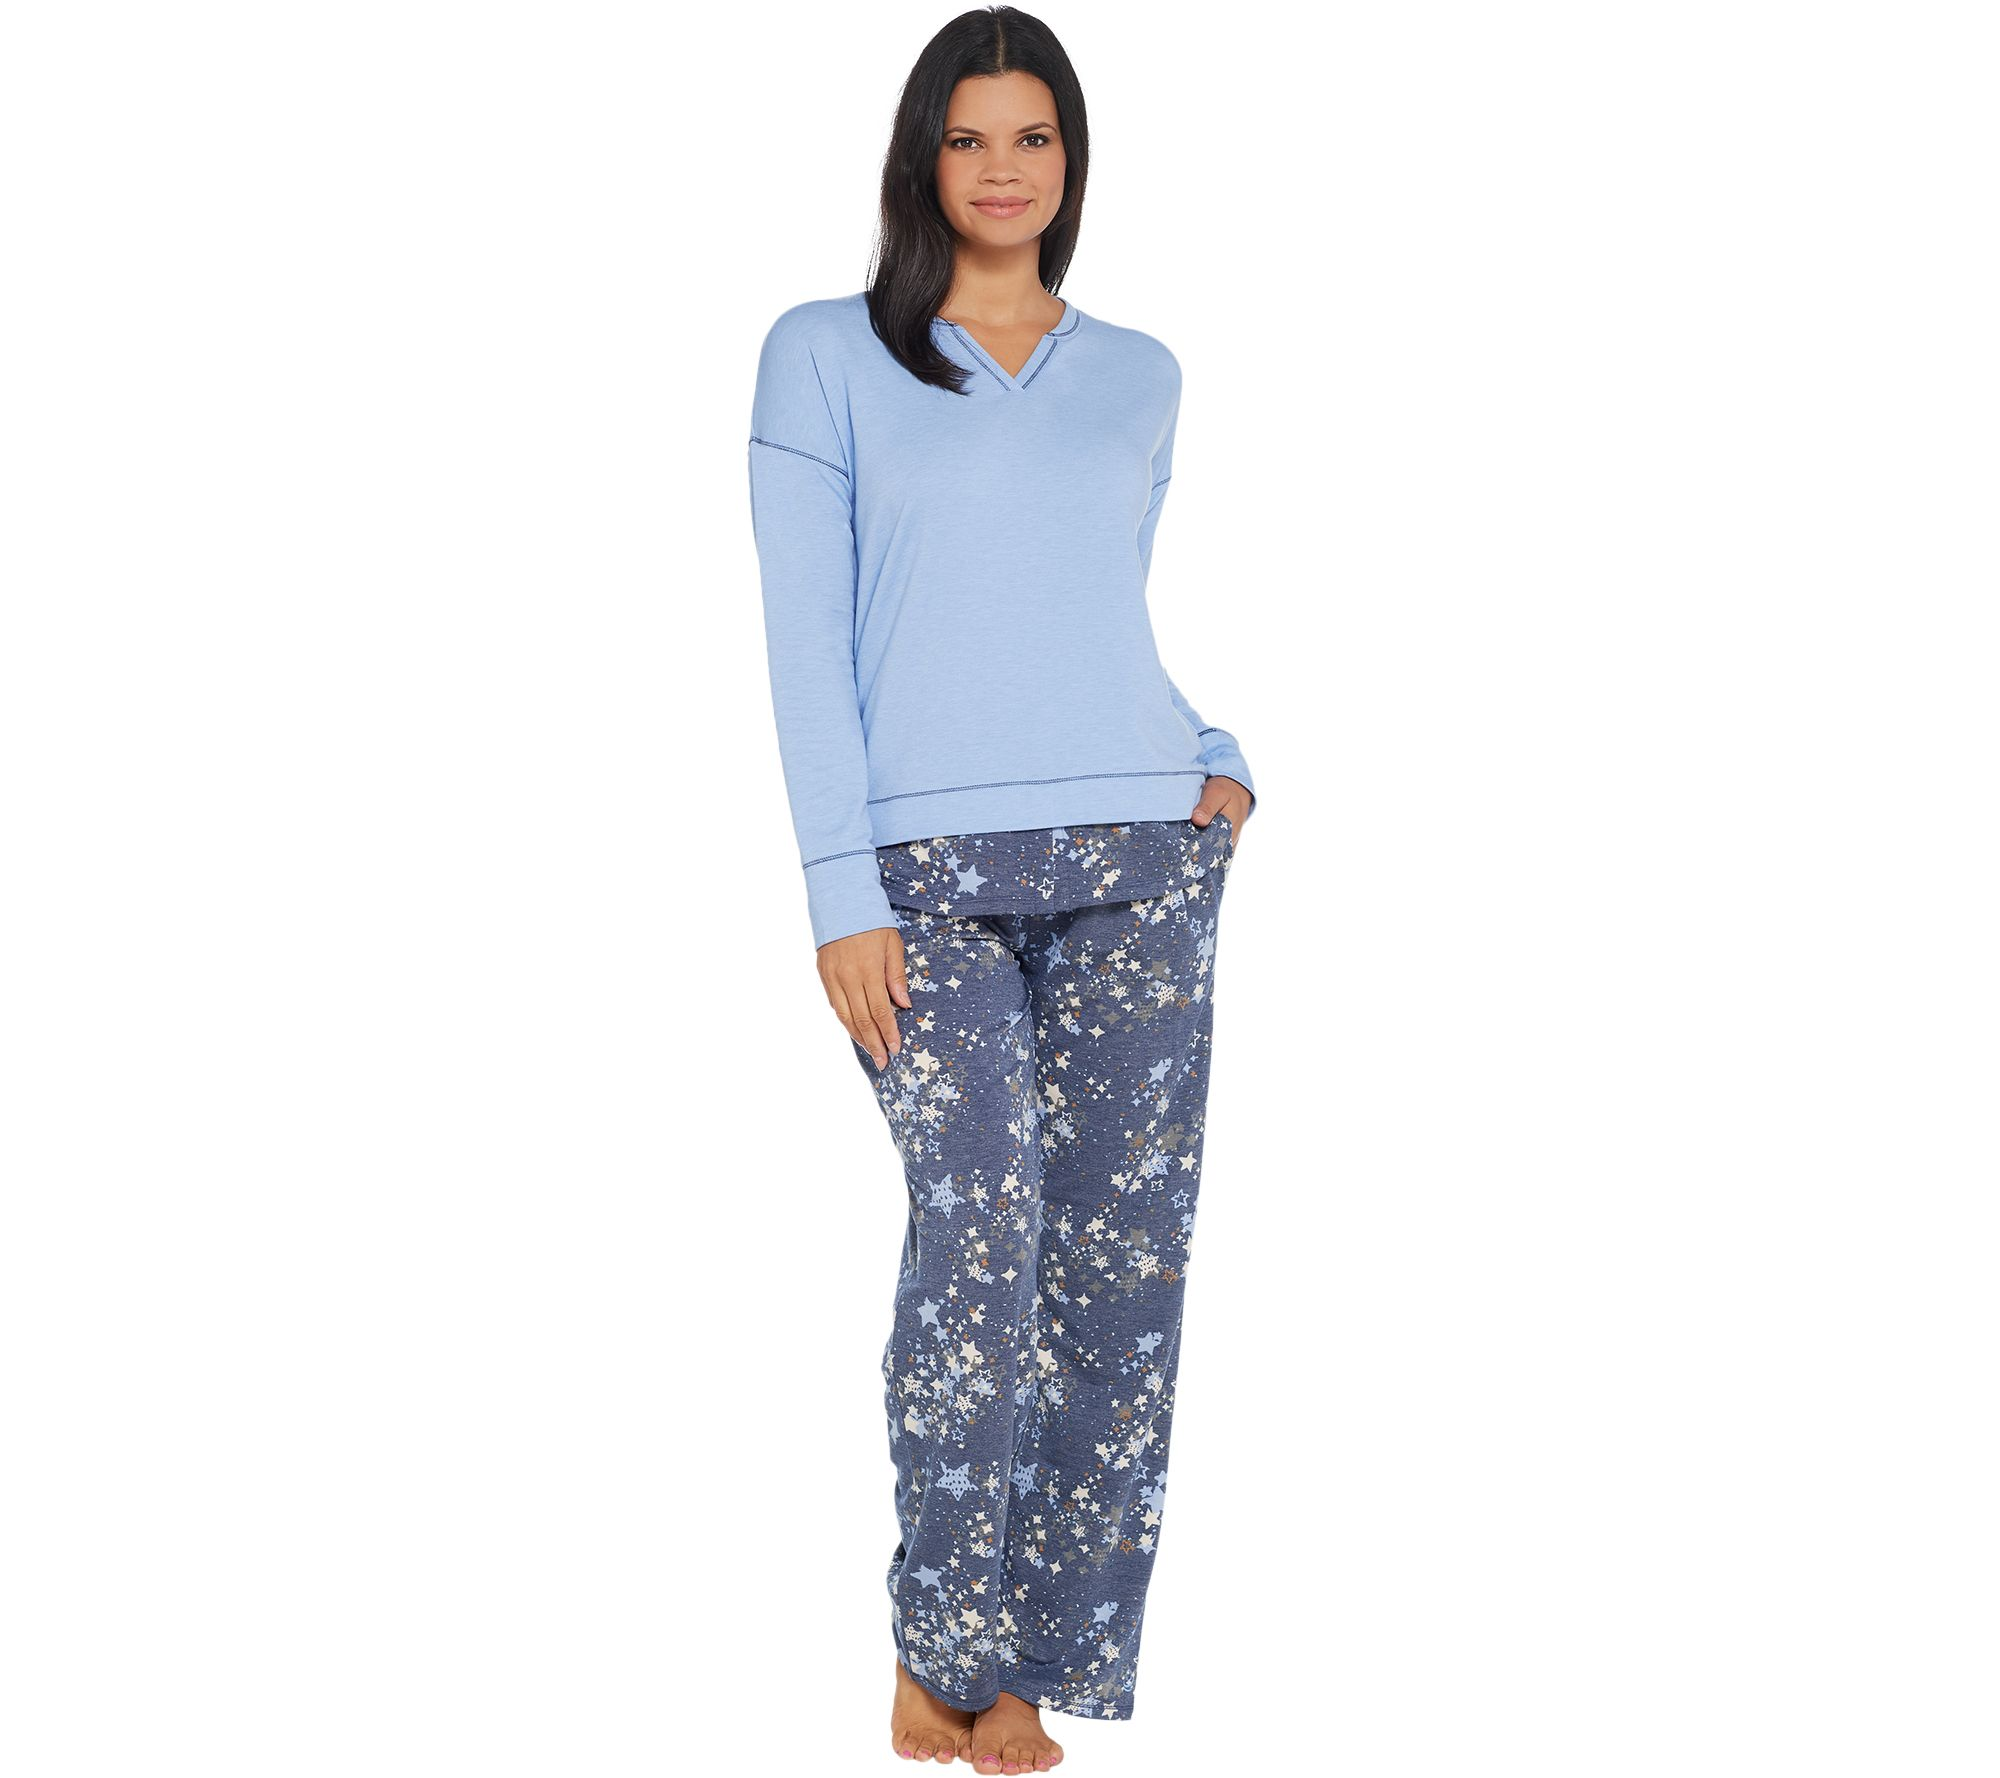 486f4544bcd3c Cuddl Duds Comfortwear Novelty Pajama Set - Page 1 — QVC.com